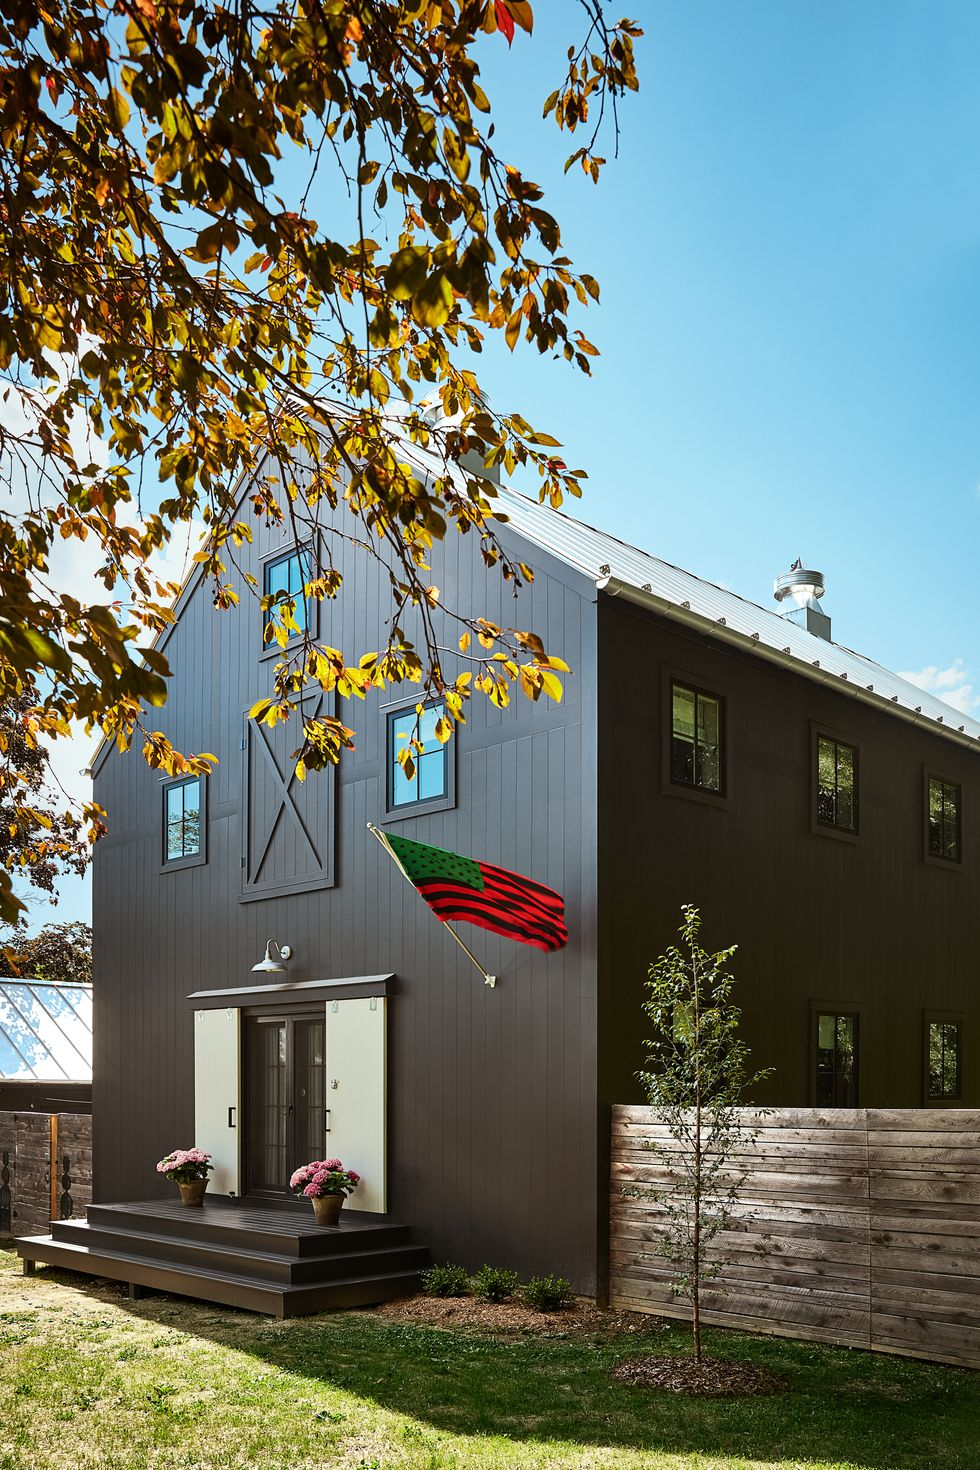 How To Choose An Exterior Paint Color + Our Favorite Shades AND Combos Best Children's Lighting & Home Decor Online Store